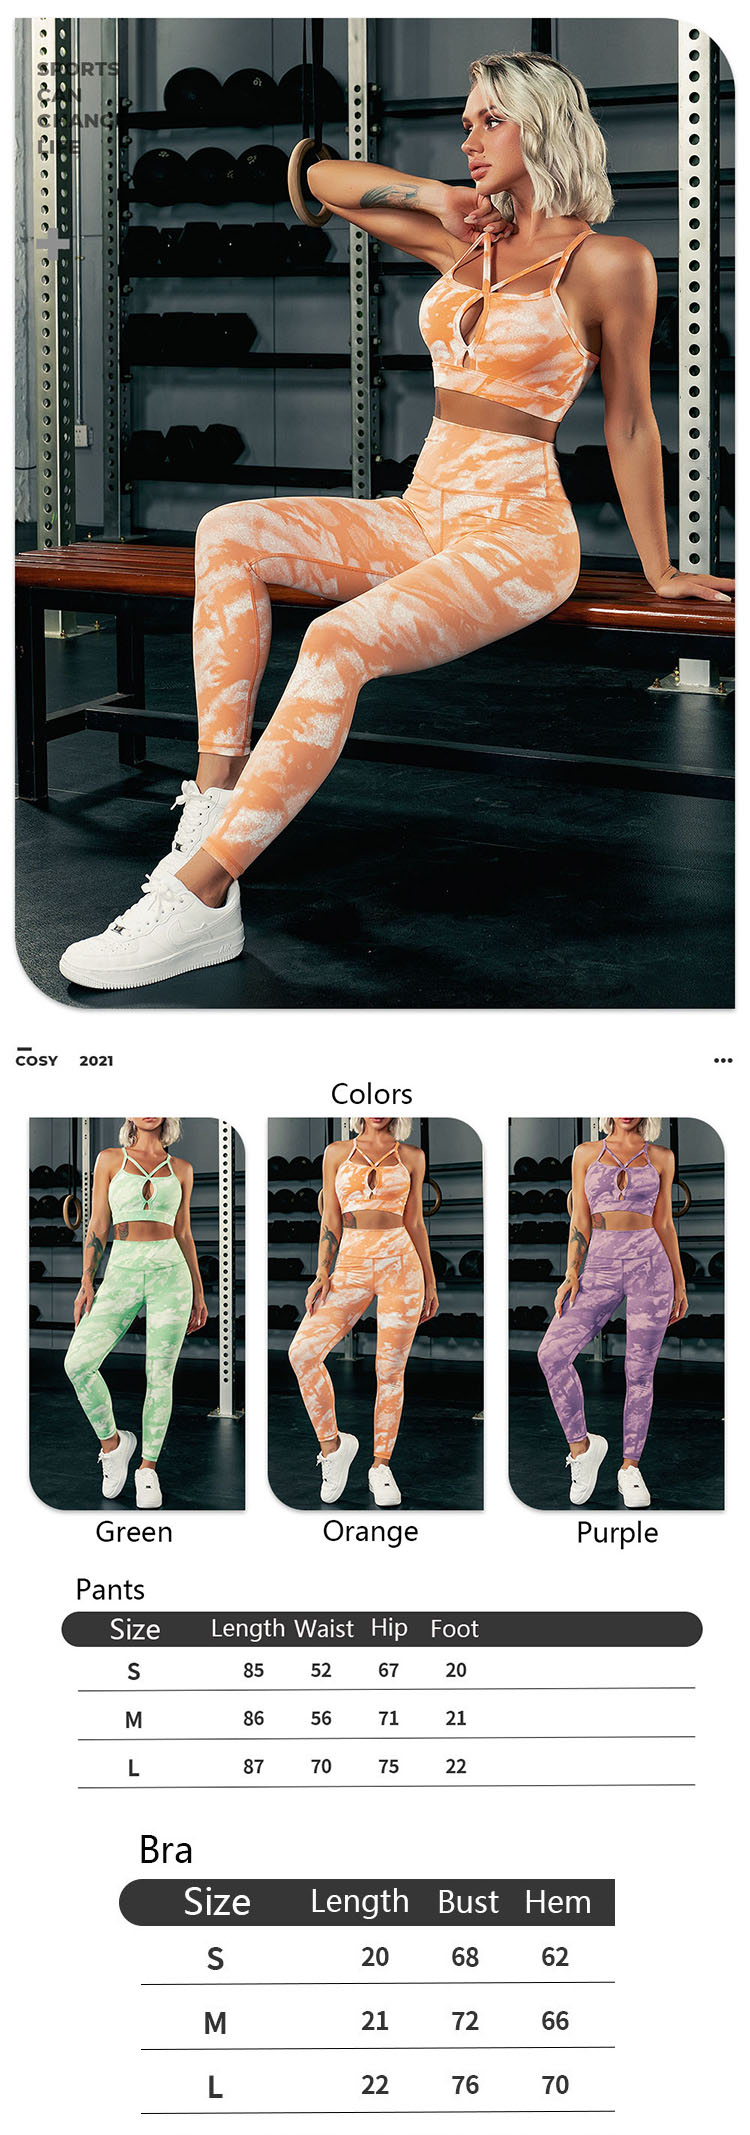 Comfortable yoga pants, replacing harmful chemical agents with plant dyes